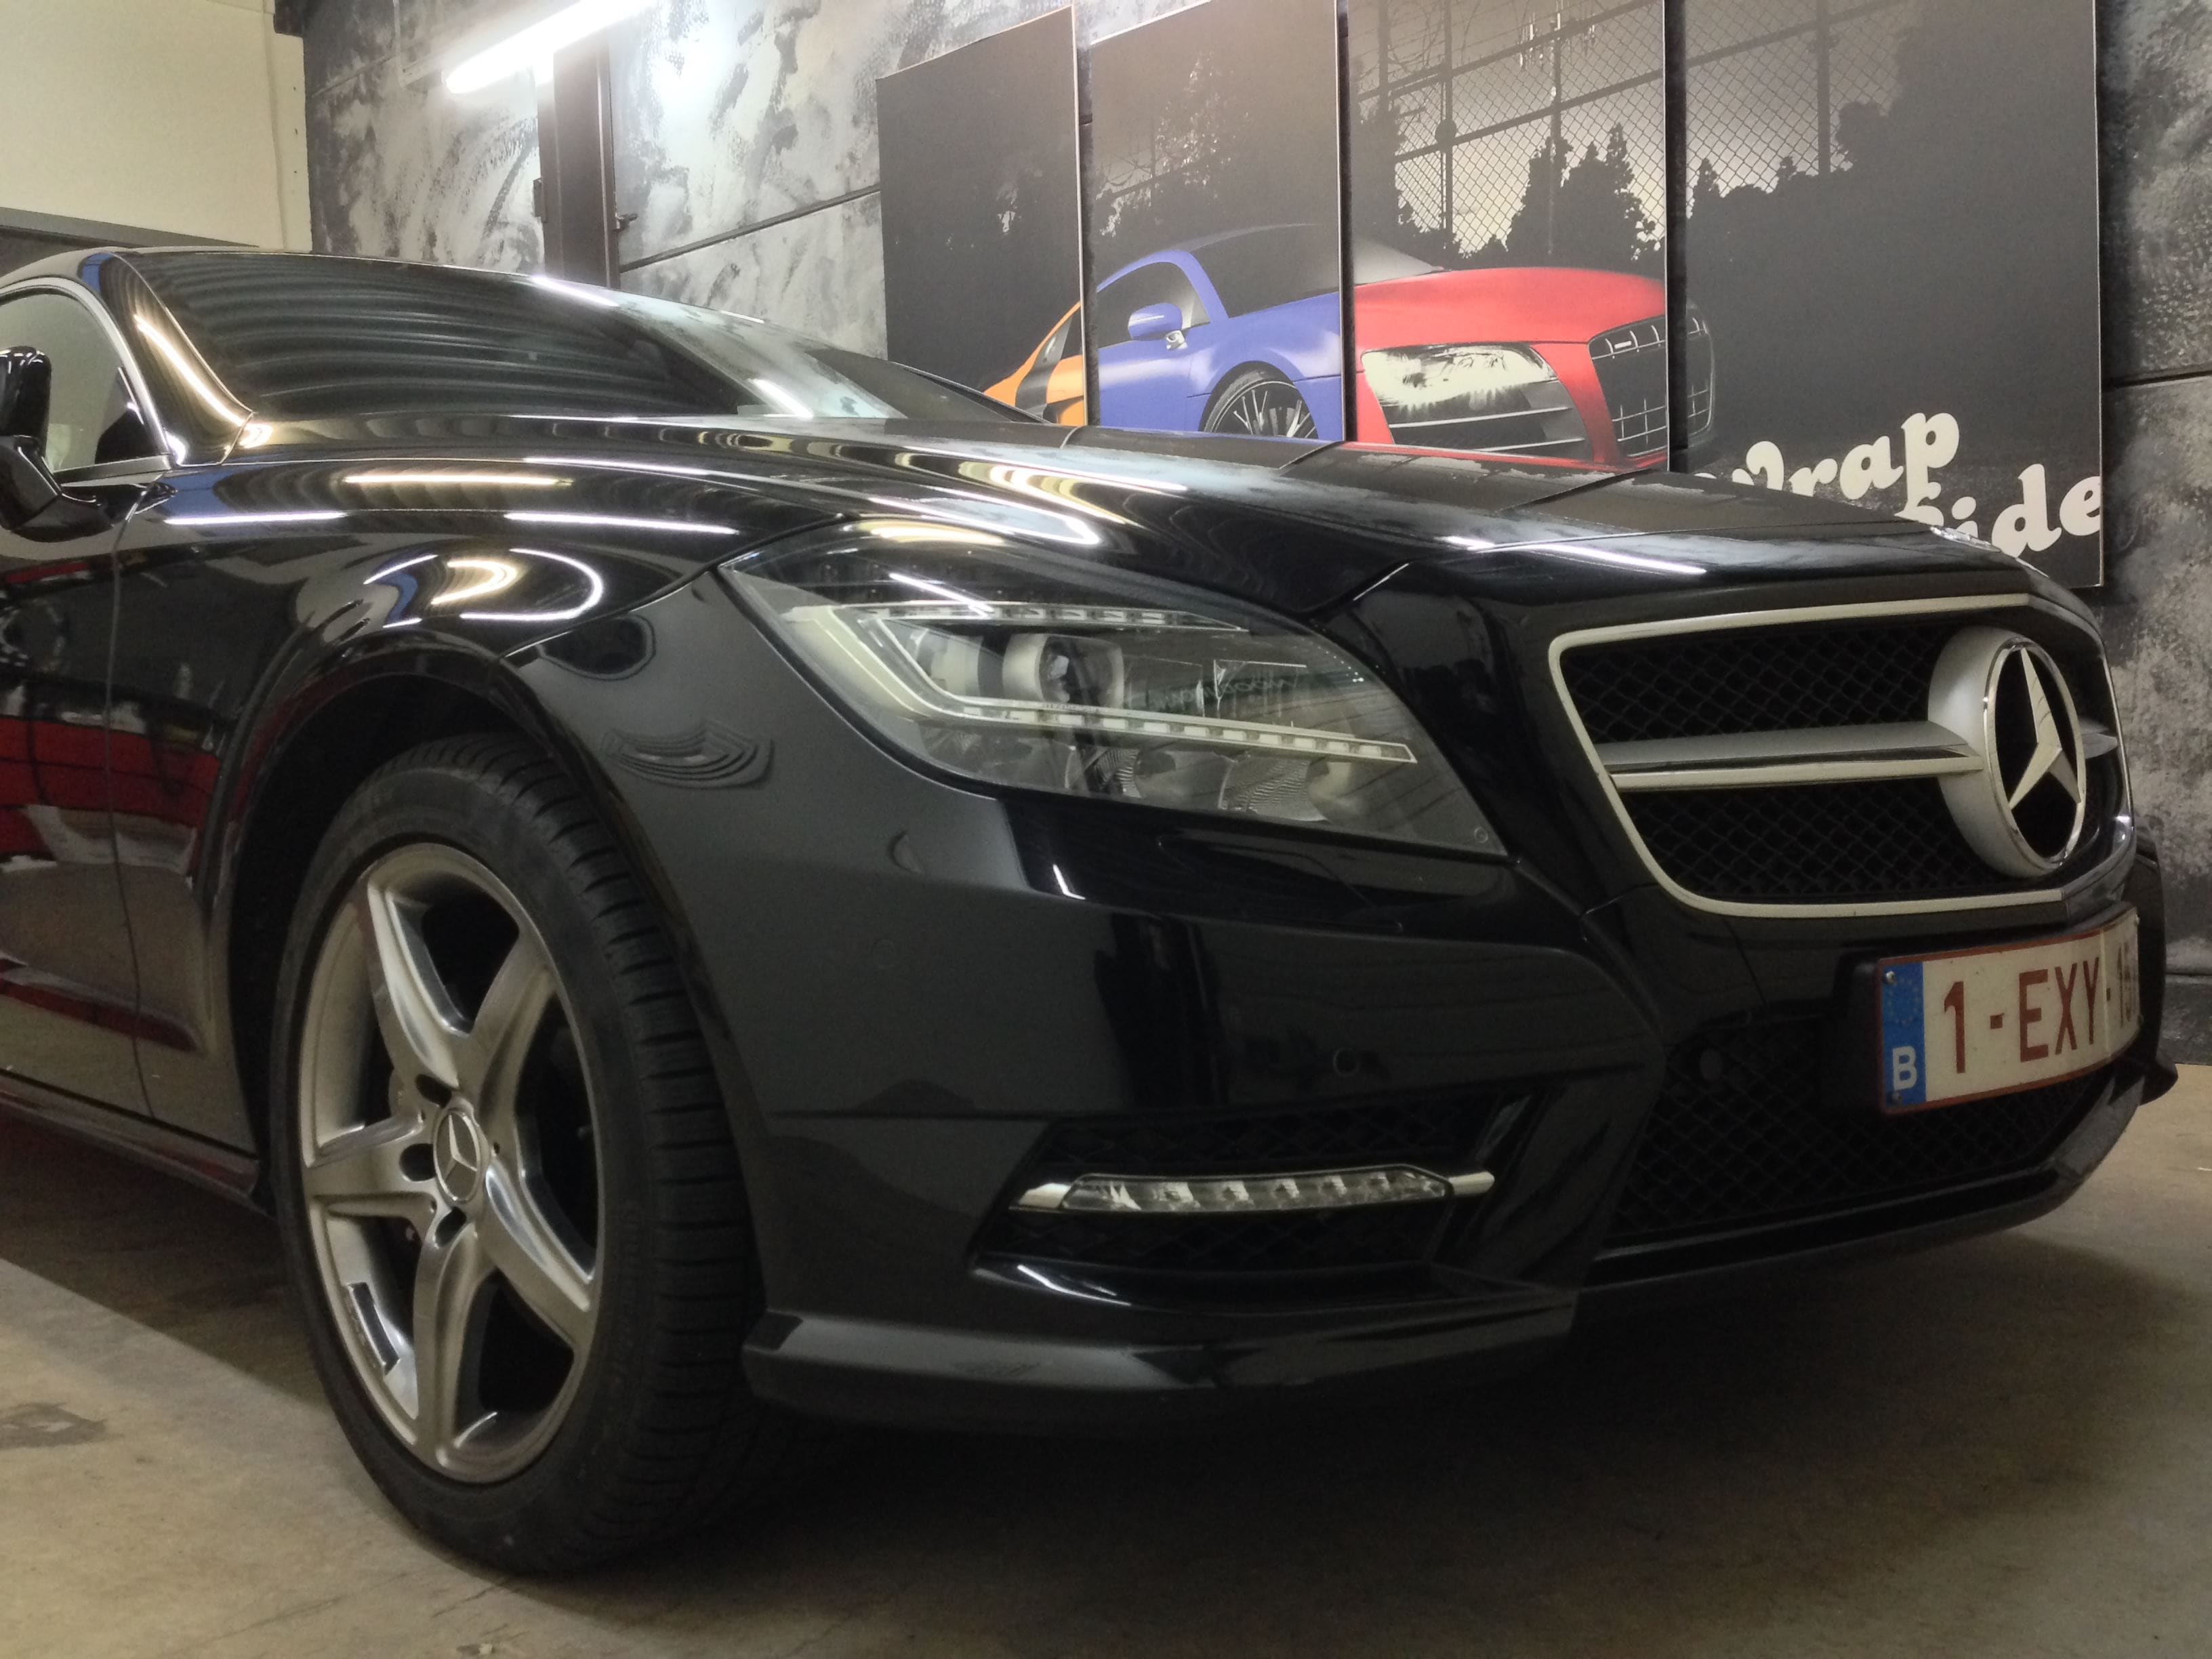 Mercedes CLS met White Satin Pearl Wrap, Carwrapping door Wrapmyride.nu Foto-nr:6173, ©2020